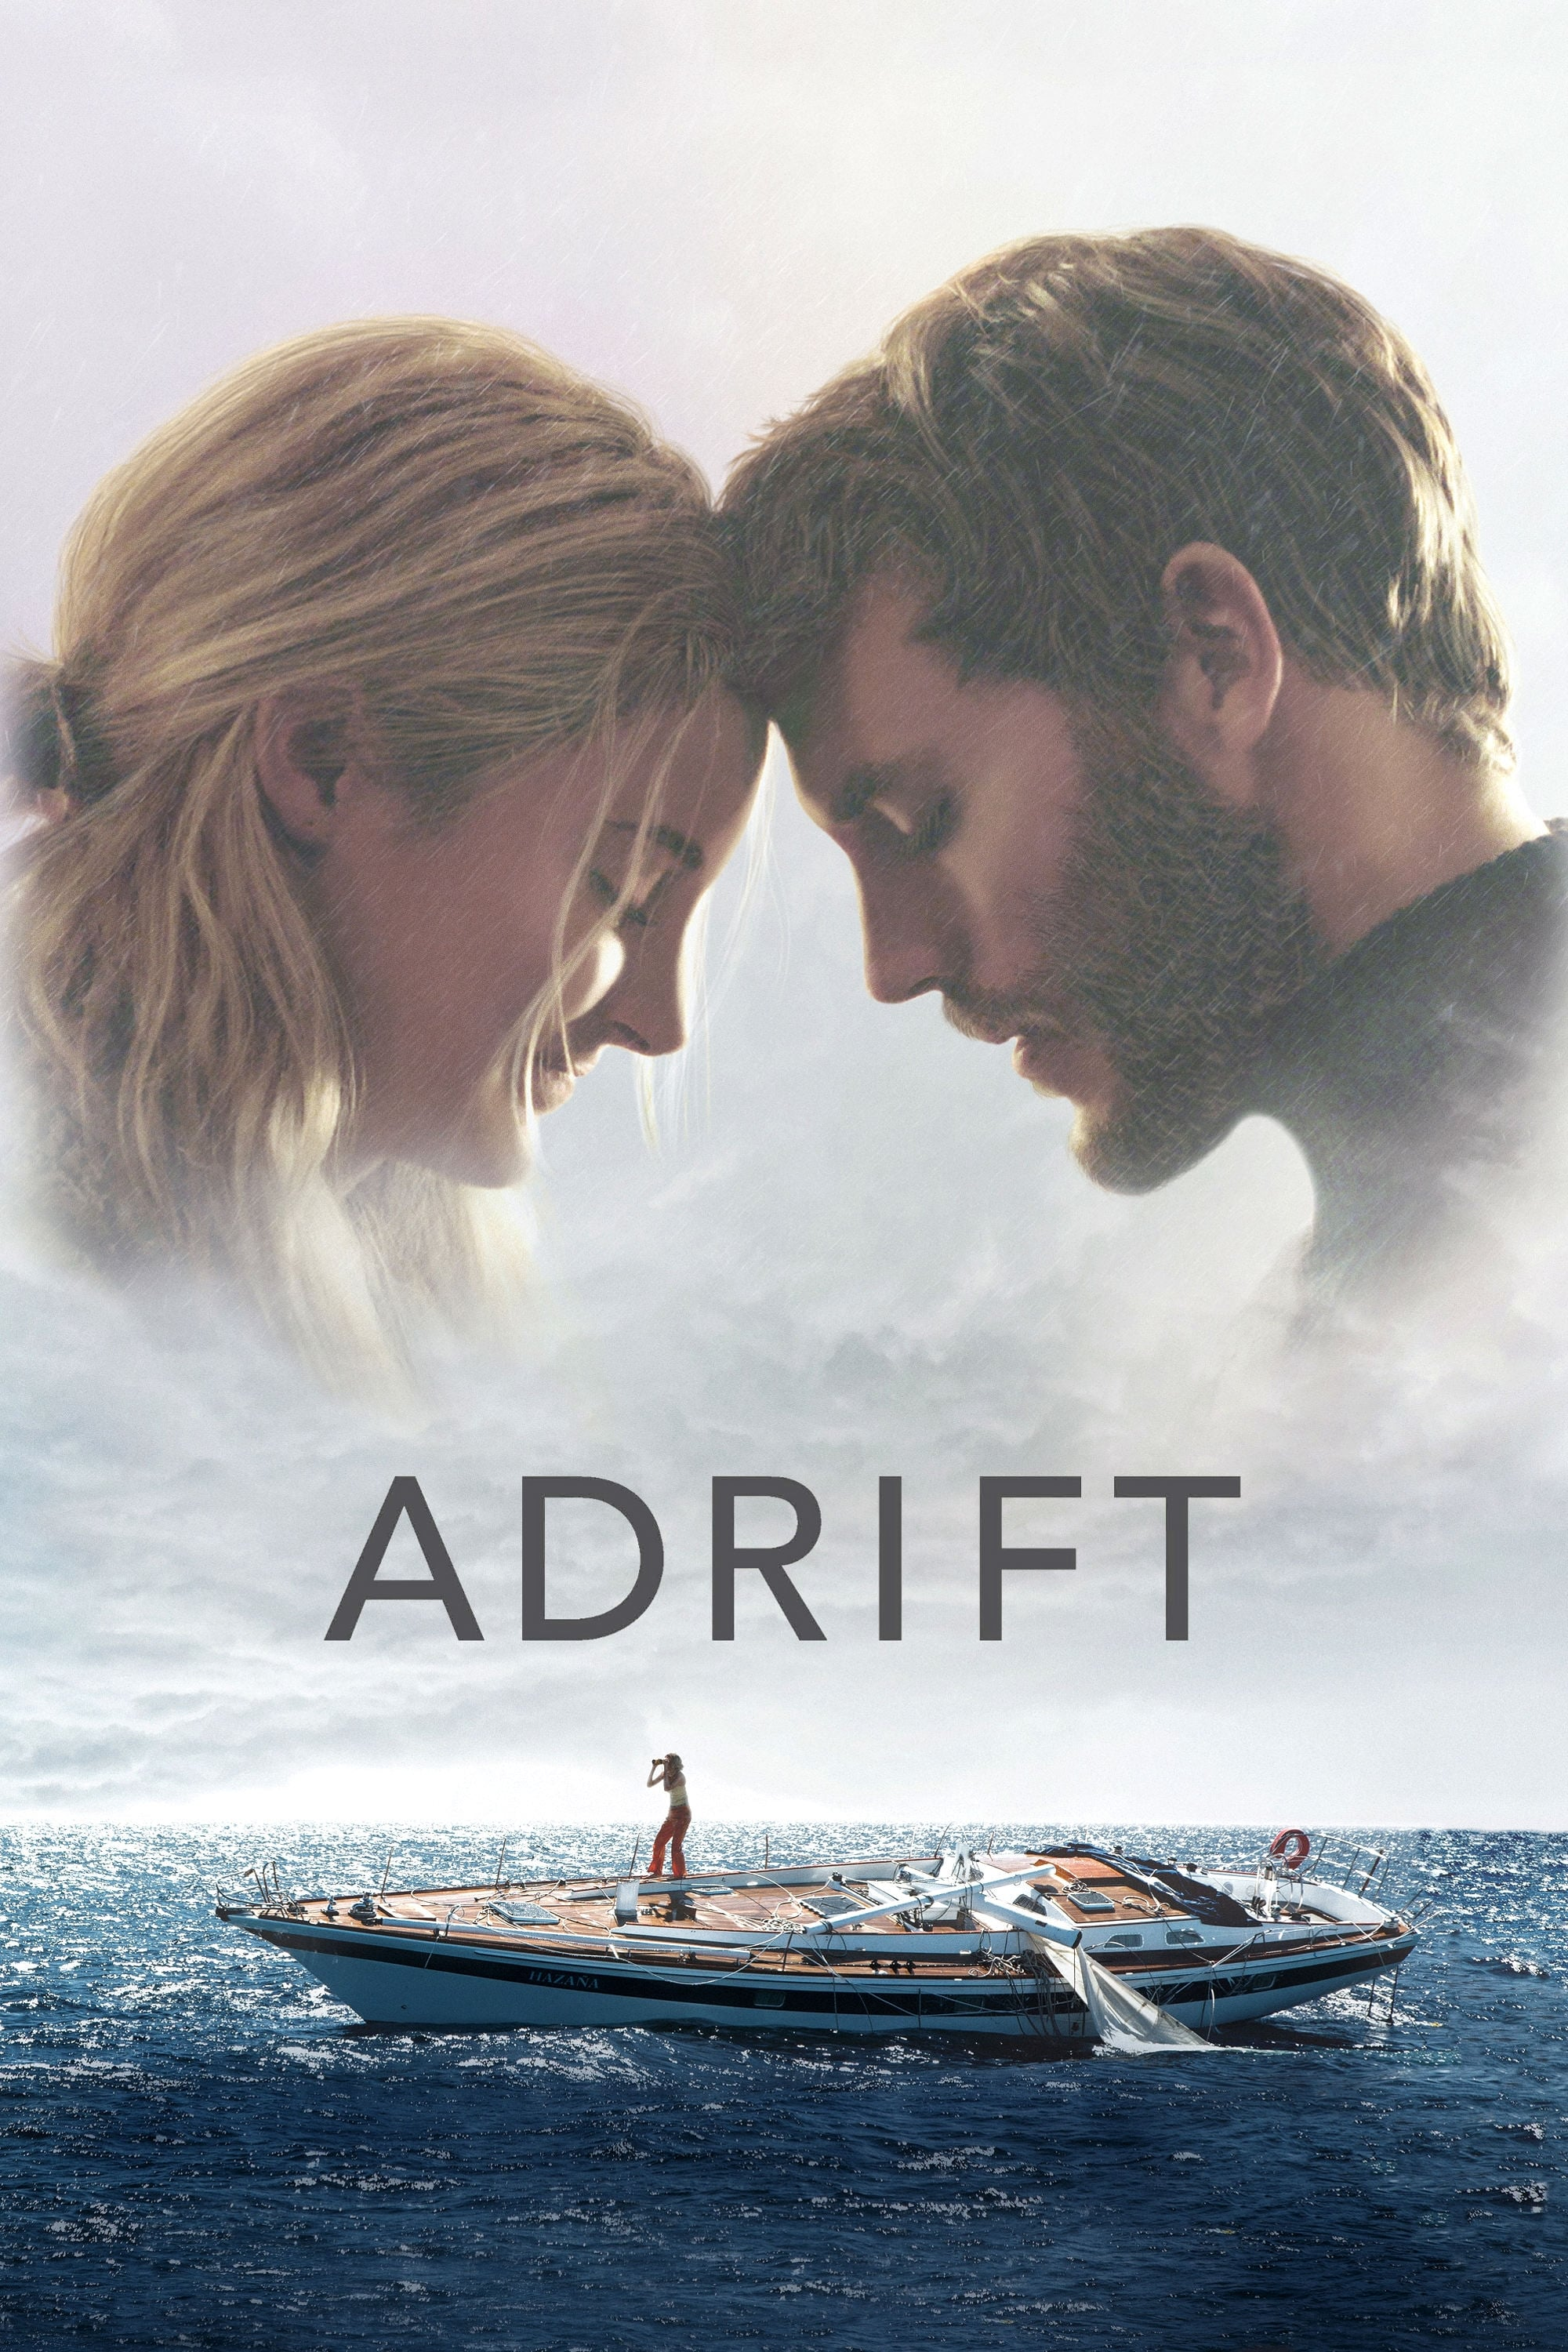 A la deriva (Adrift)